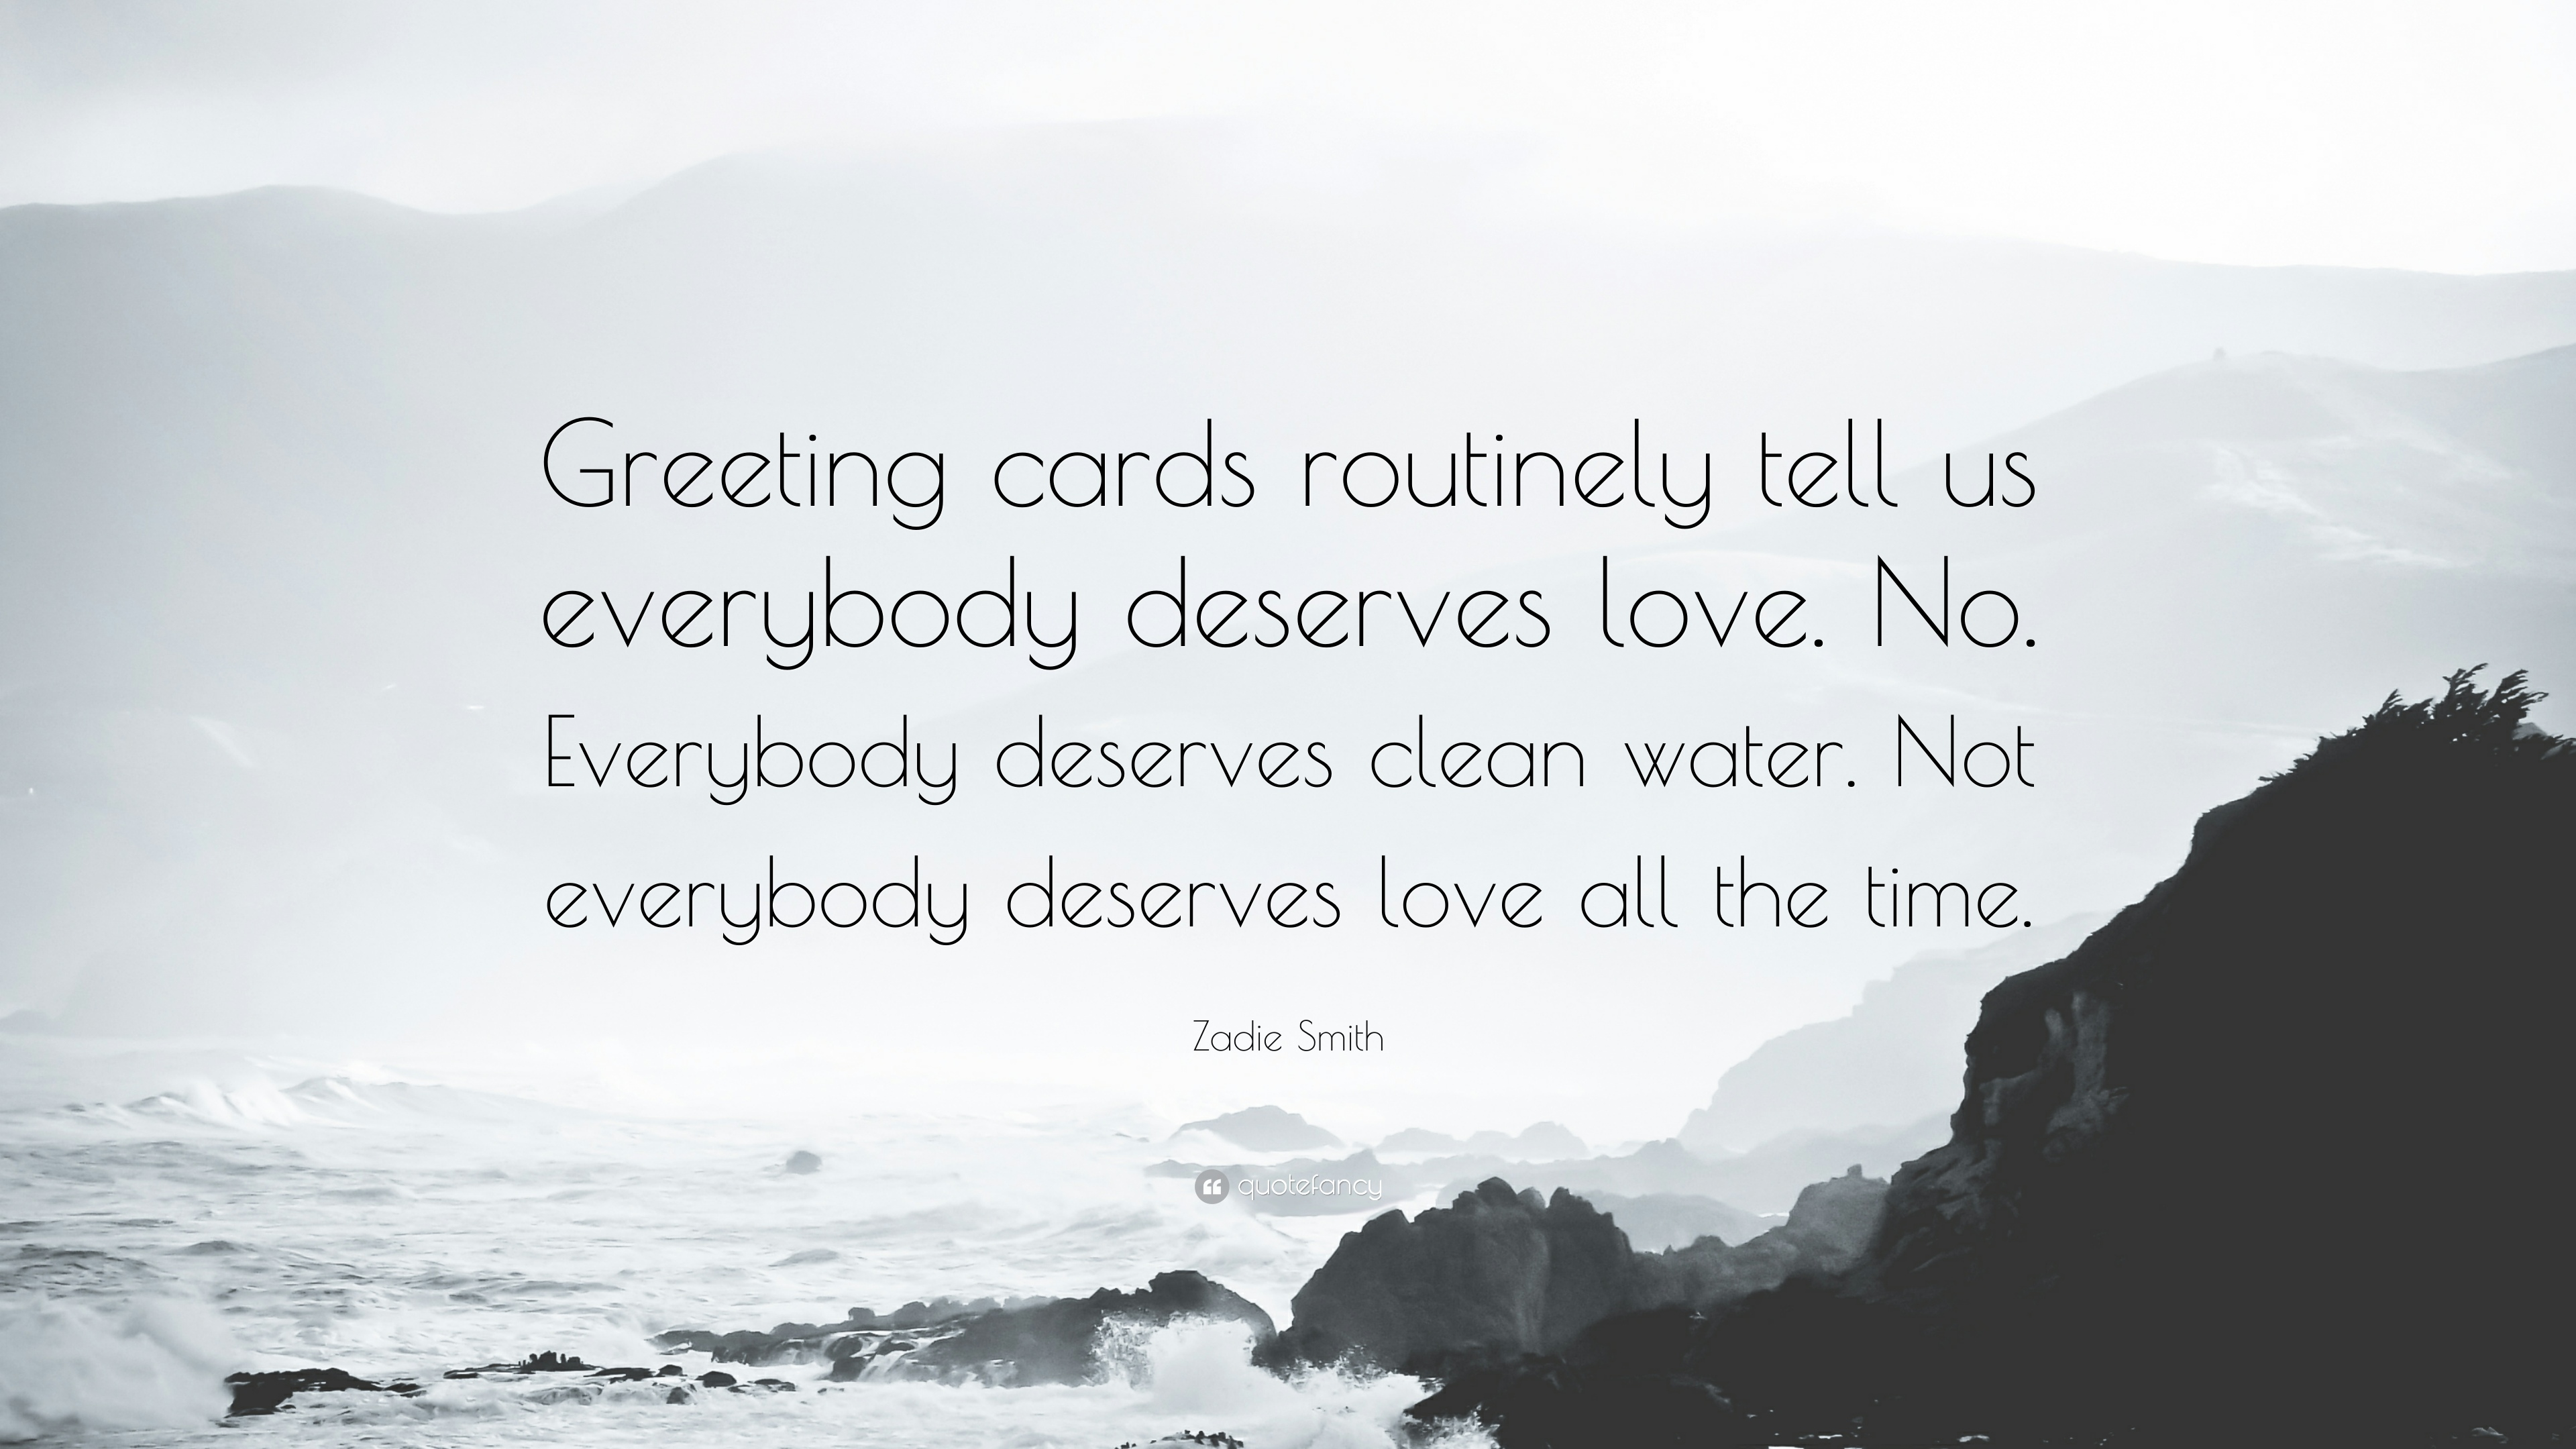 Zadie smith quote greeting cards routinely tell us everybody zadie smith quote greeting cards routinely tell us everybody deserves love no m4hsunfo